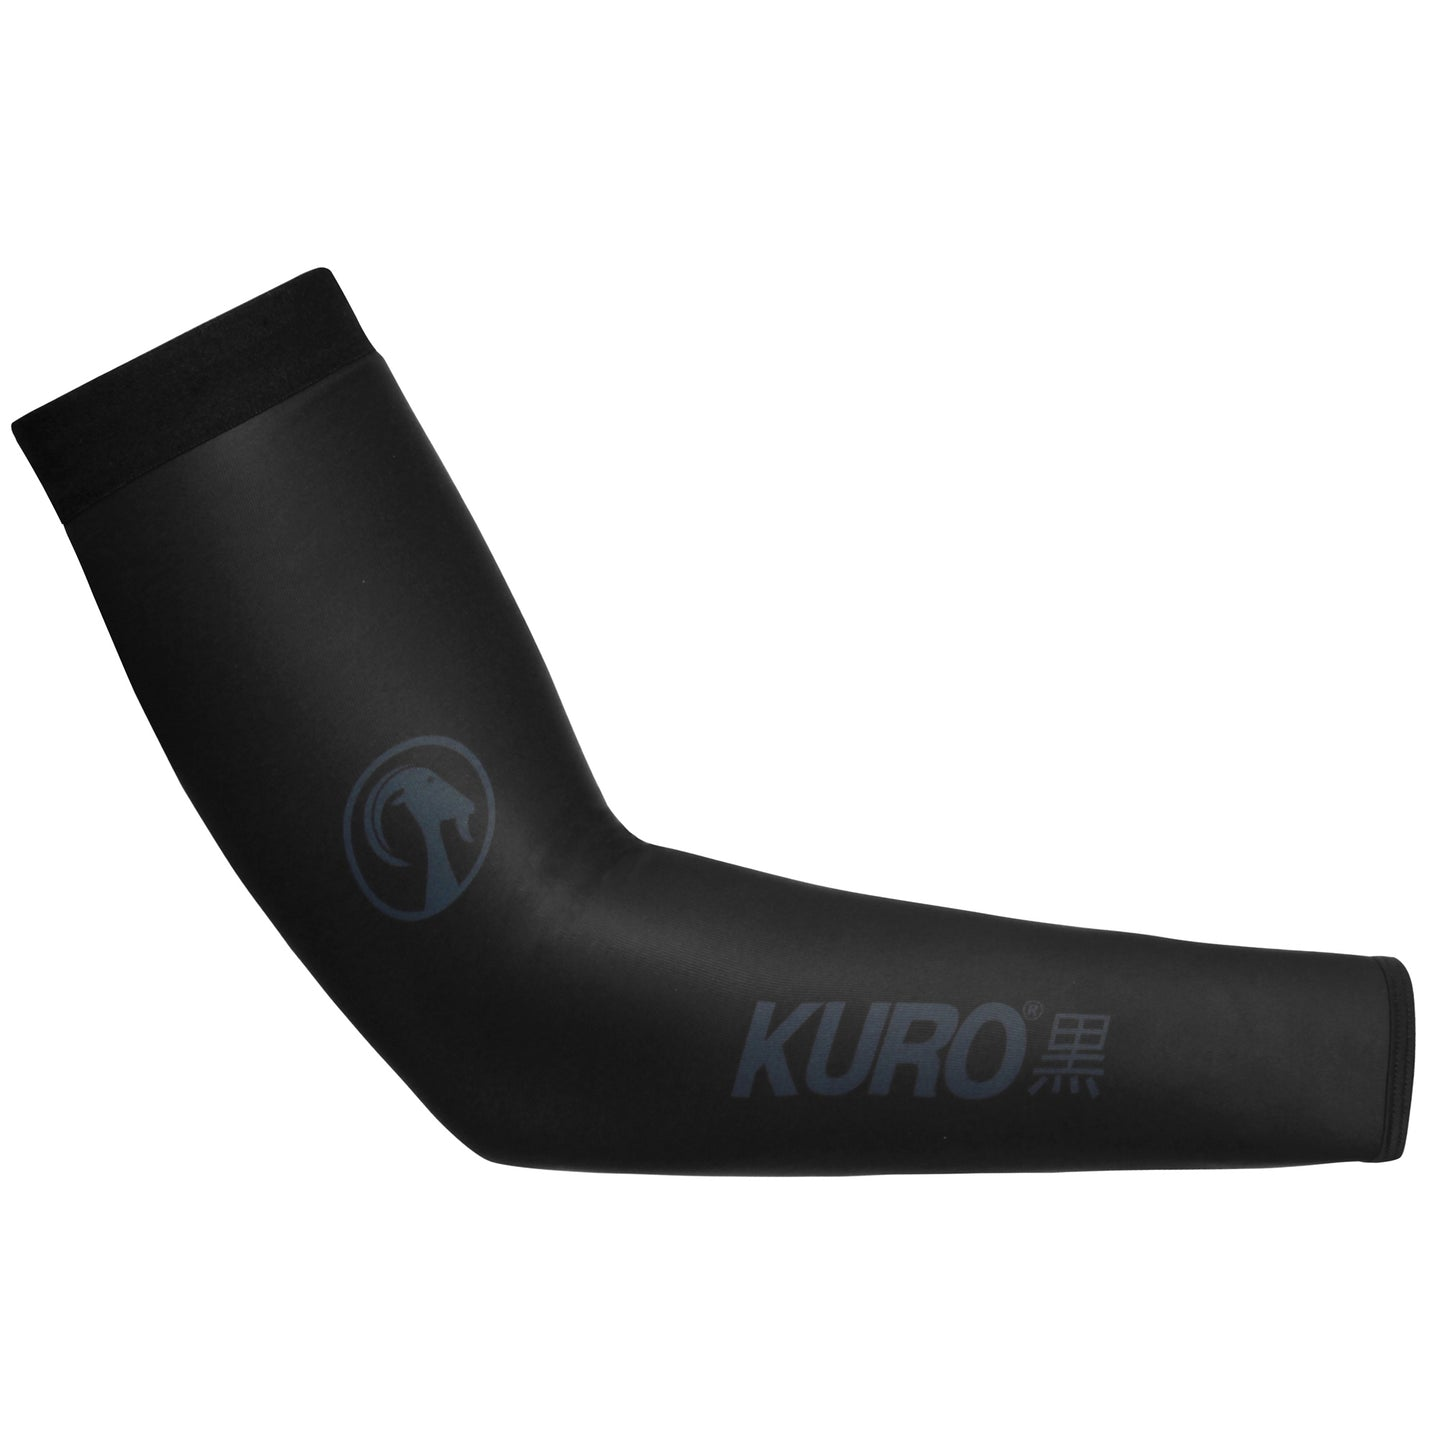 Stolen Goat Orkaan Waterproof Arm Warmers - Kuro Black